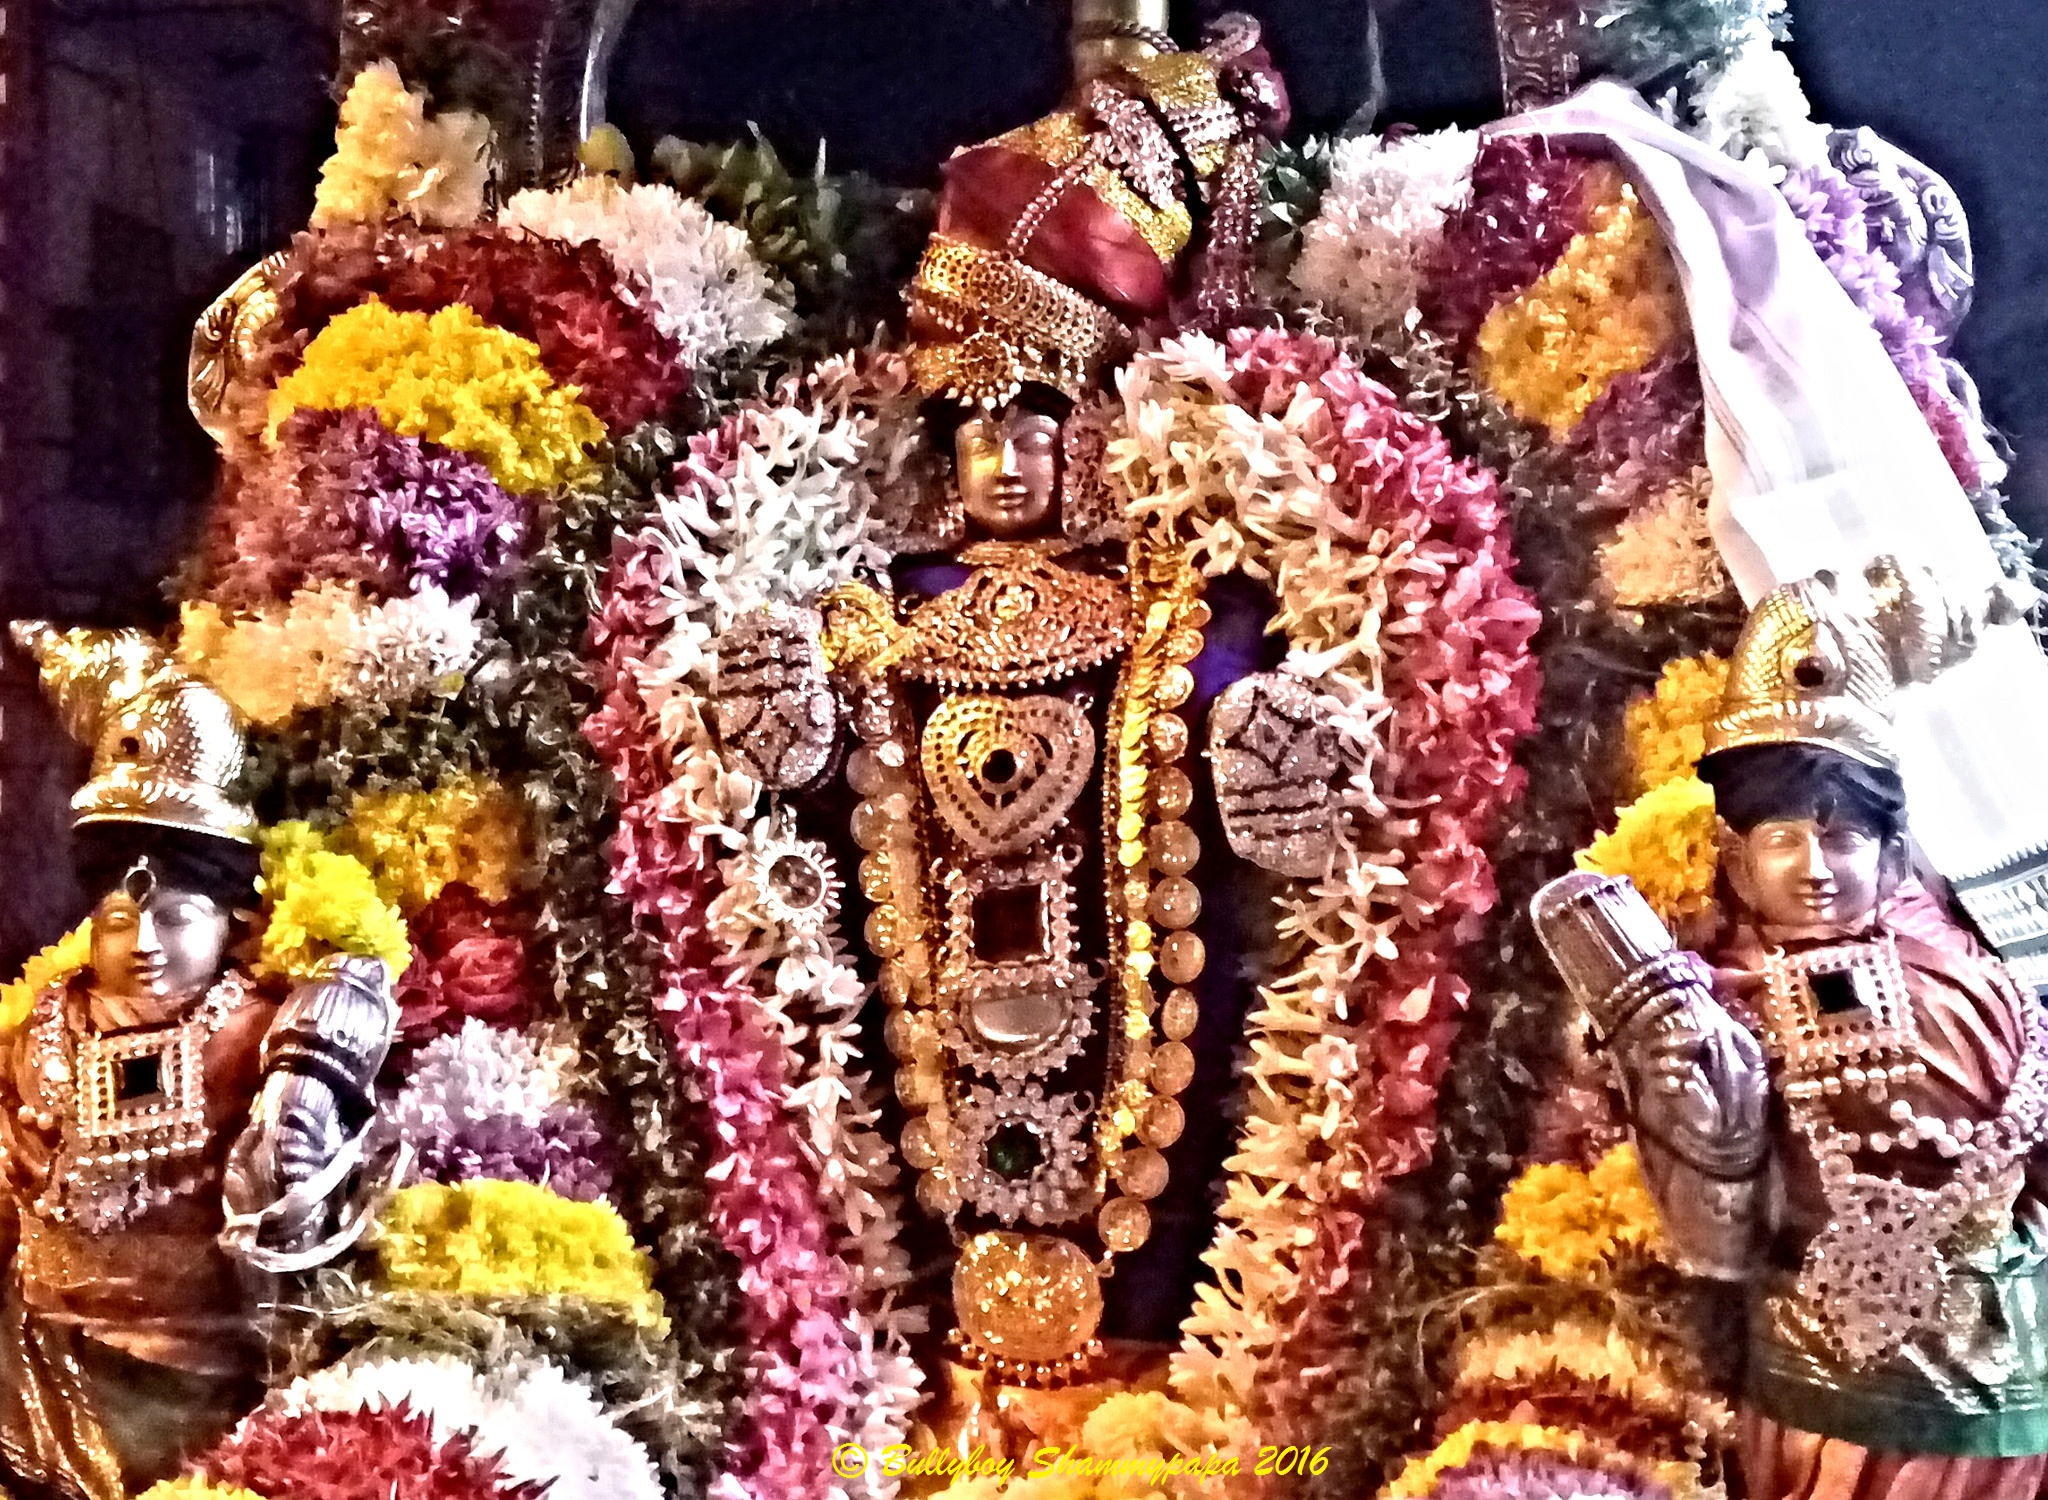 Simply Divine - A picture of God Vishnu with his consorts Sridevi and Bhudevi